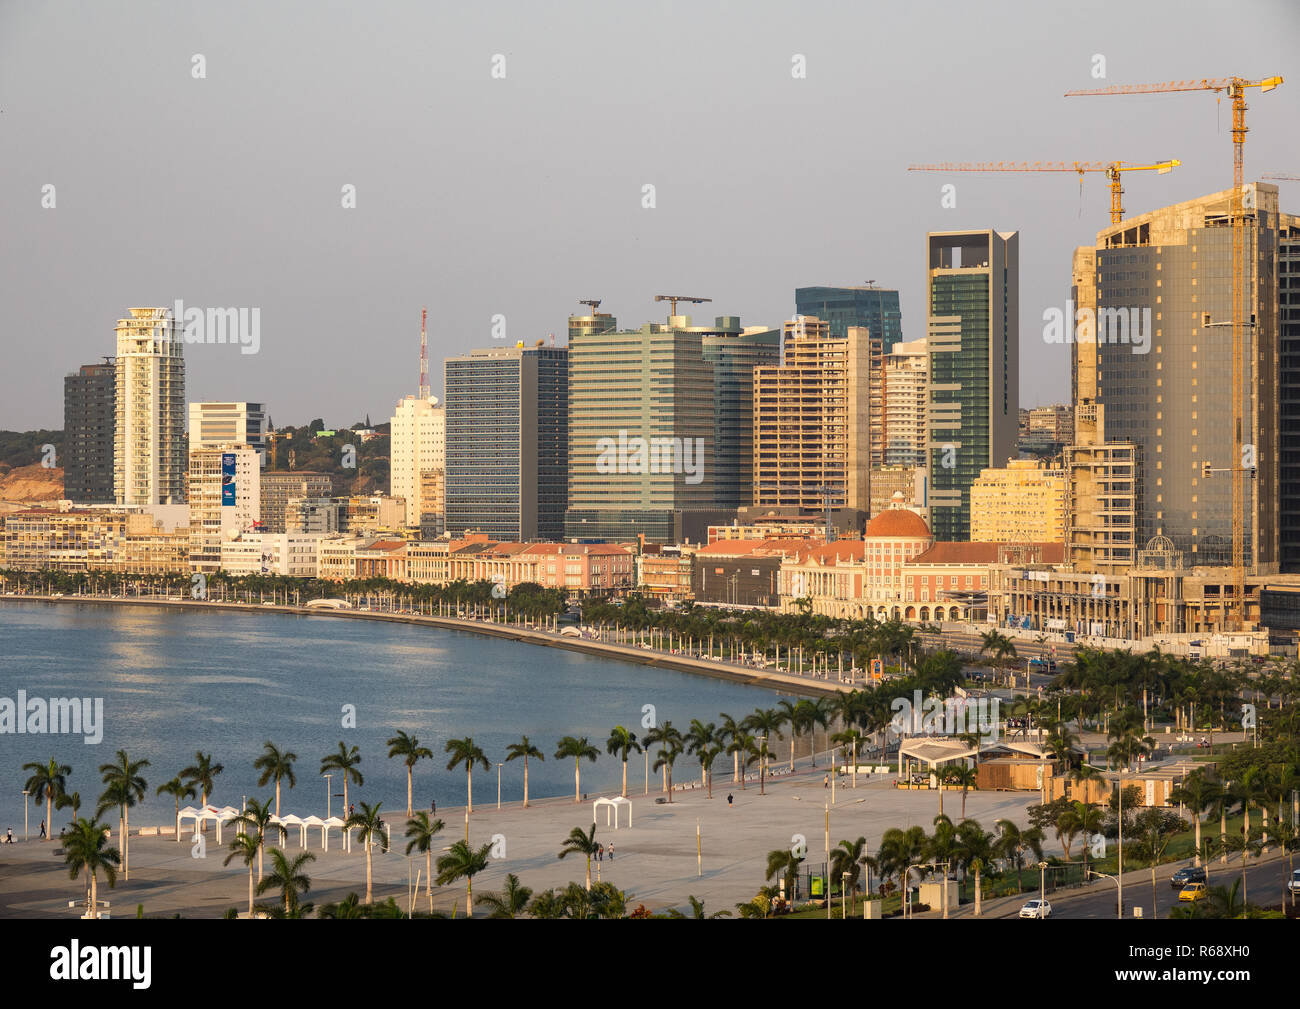 View of the Marginal promenade in Luanda city center at sunset, Luanda Province, Luanda, Angola - Stock Image